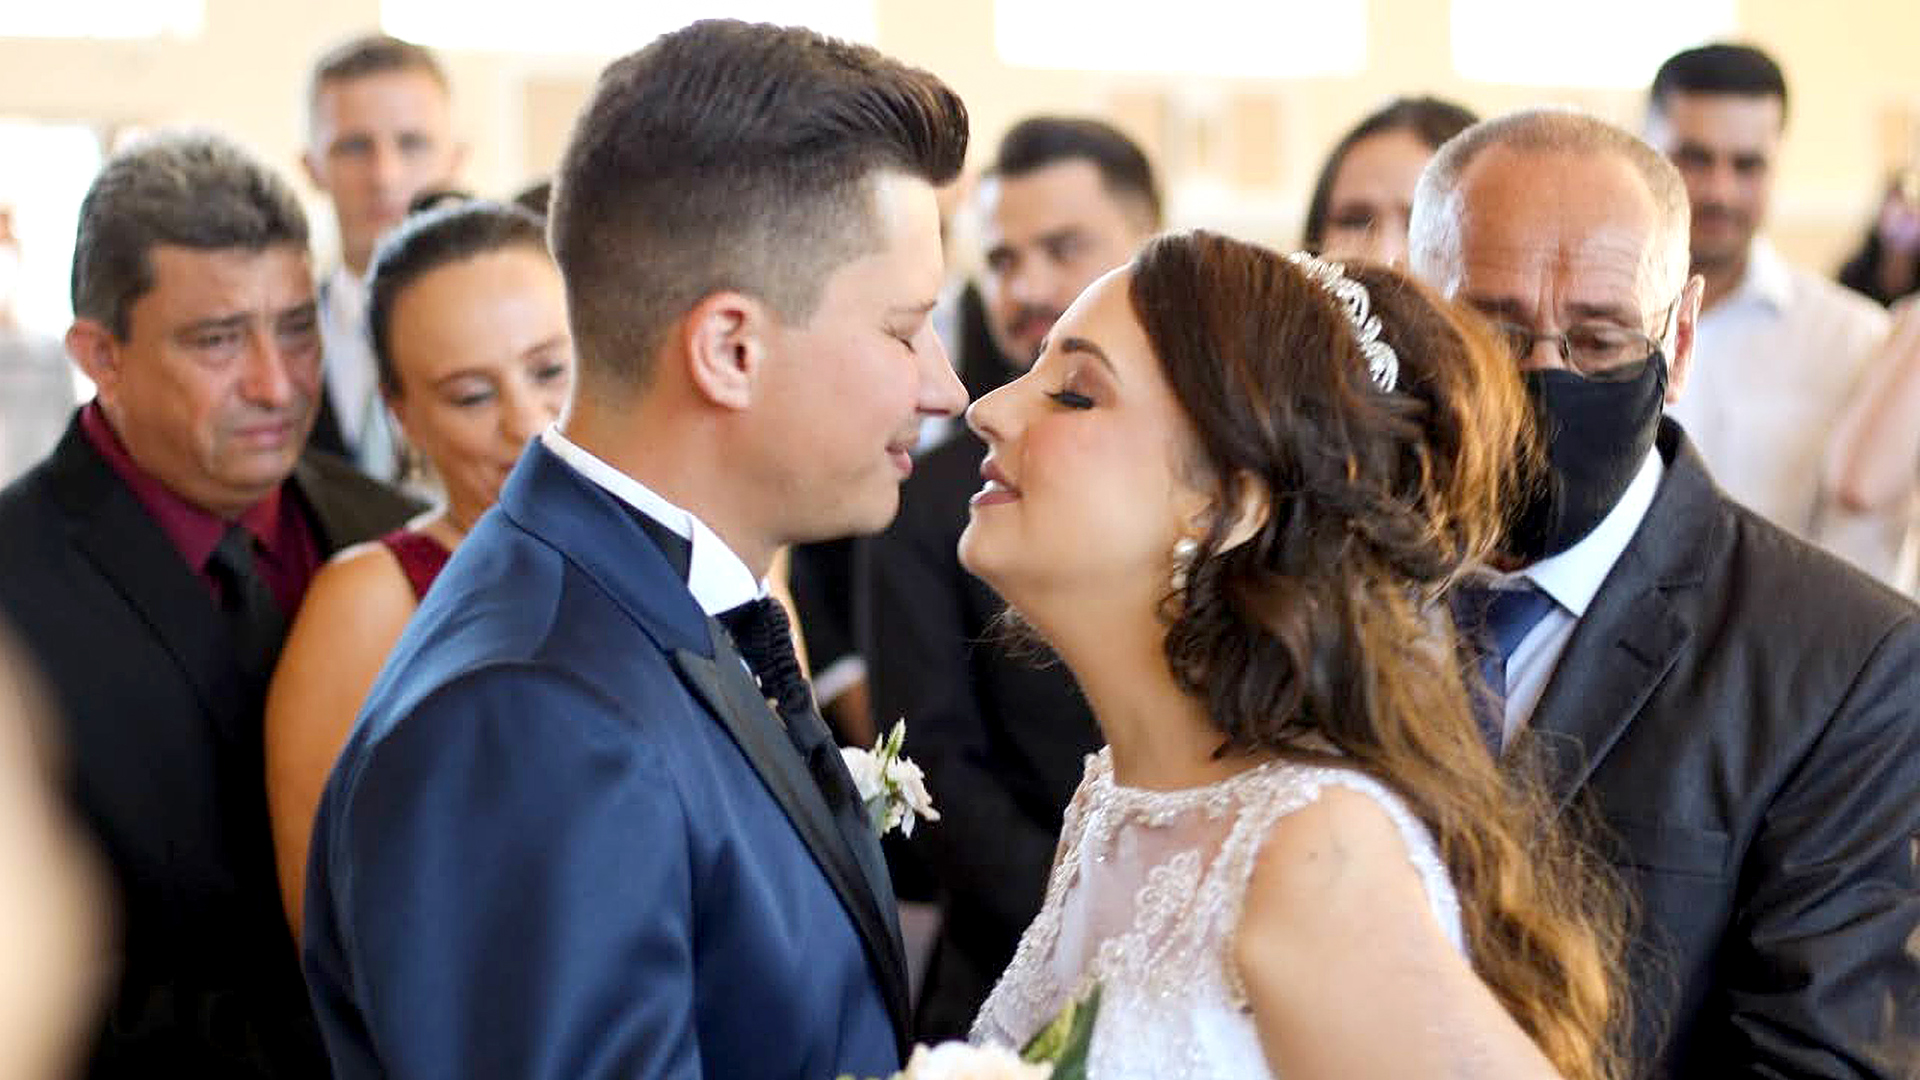 Bride's Bittersweet Dream Wedding Just 10 Days Before She Died Of Cancer